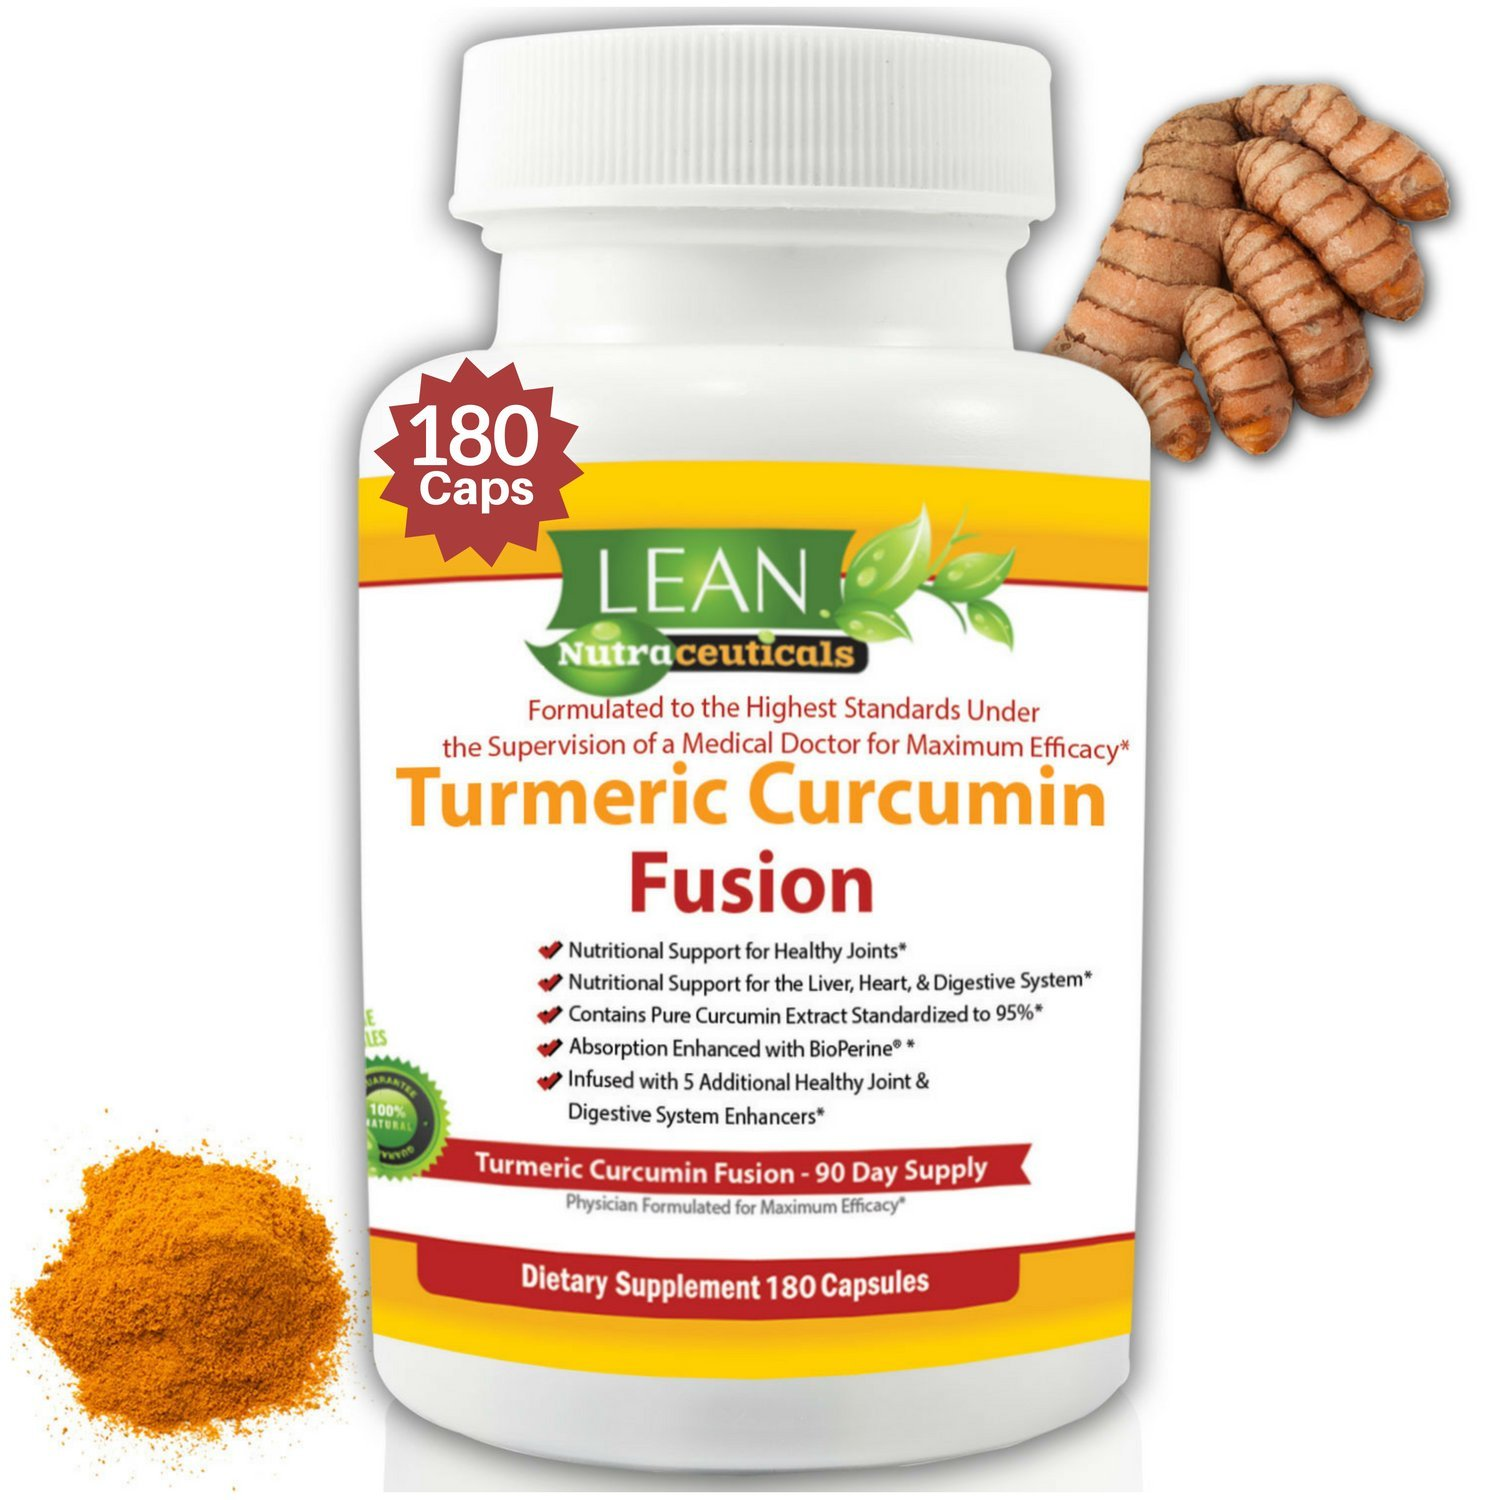 Lean Nutraceuticals Turmeric Curcumin Supplement – Curcumin Supplements with Bioperine. 95 Standardized Curcuminoids Turmeric Capsules Non-GMO Gluten-Free with Ginger, Bromelain and Black Pepper